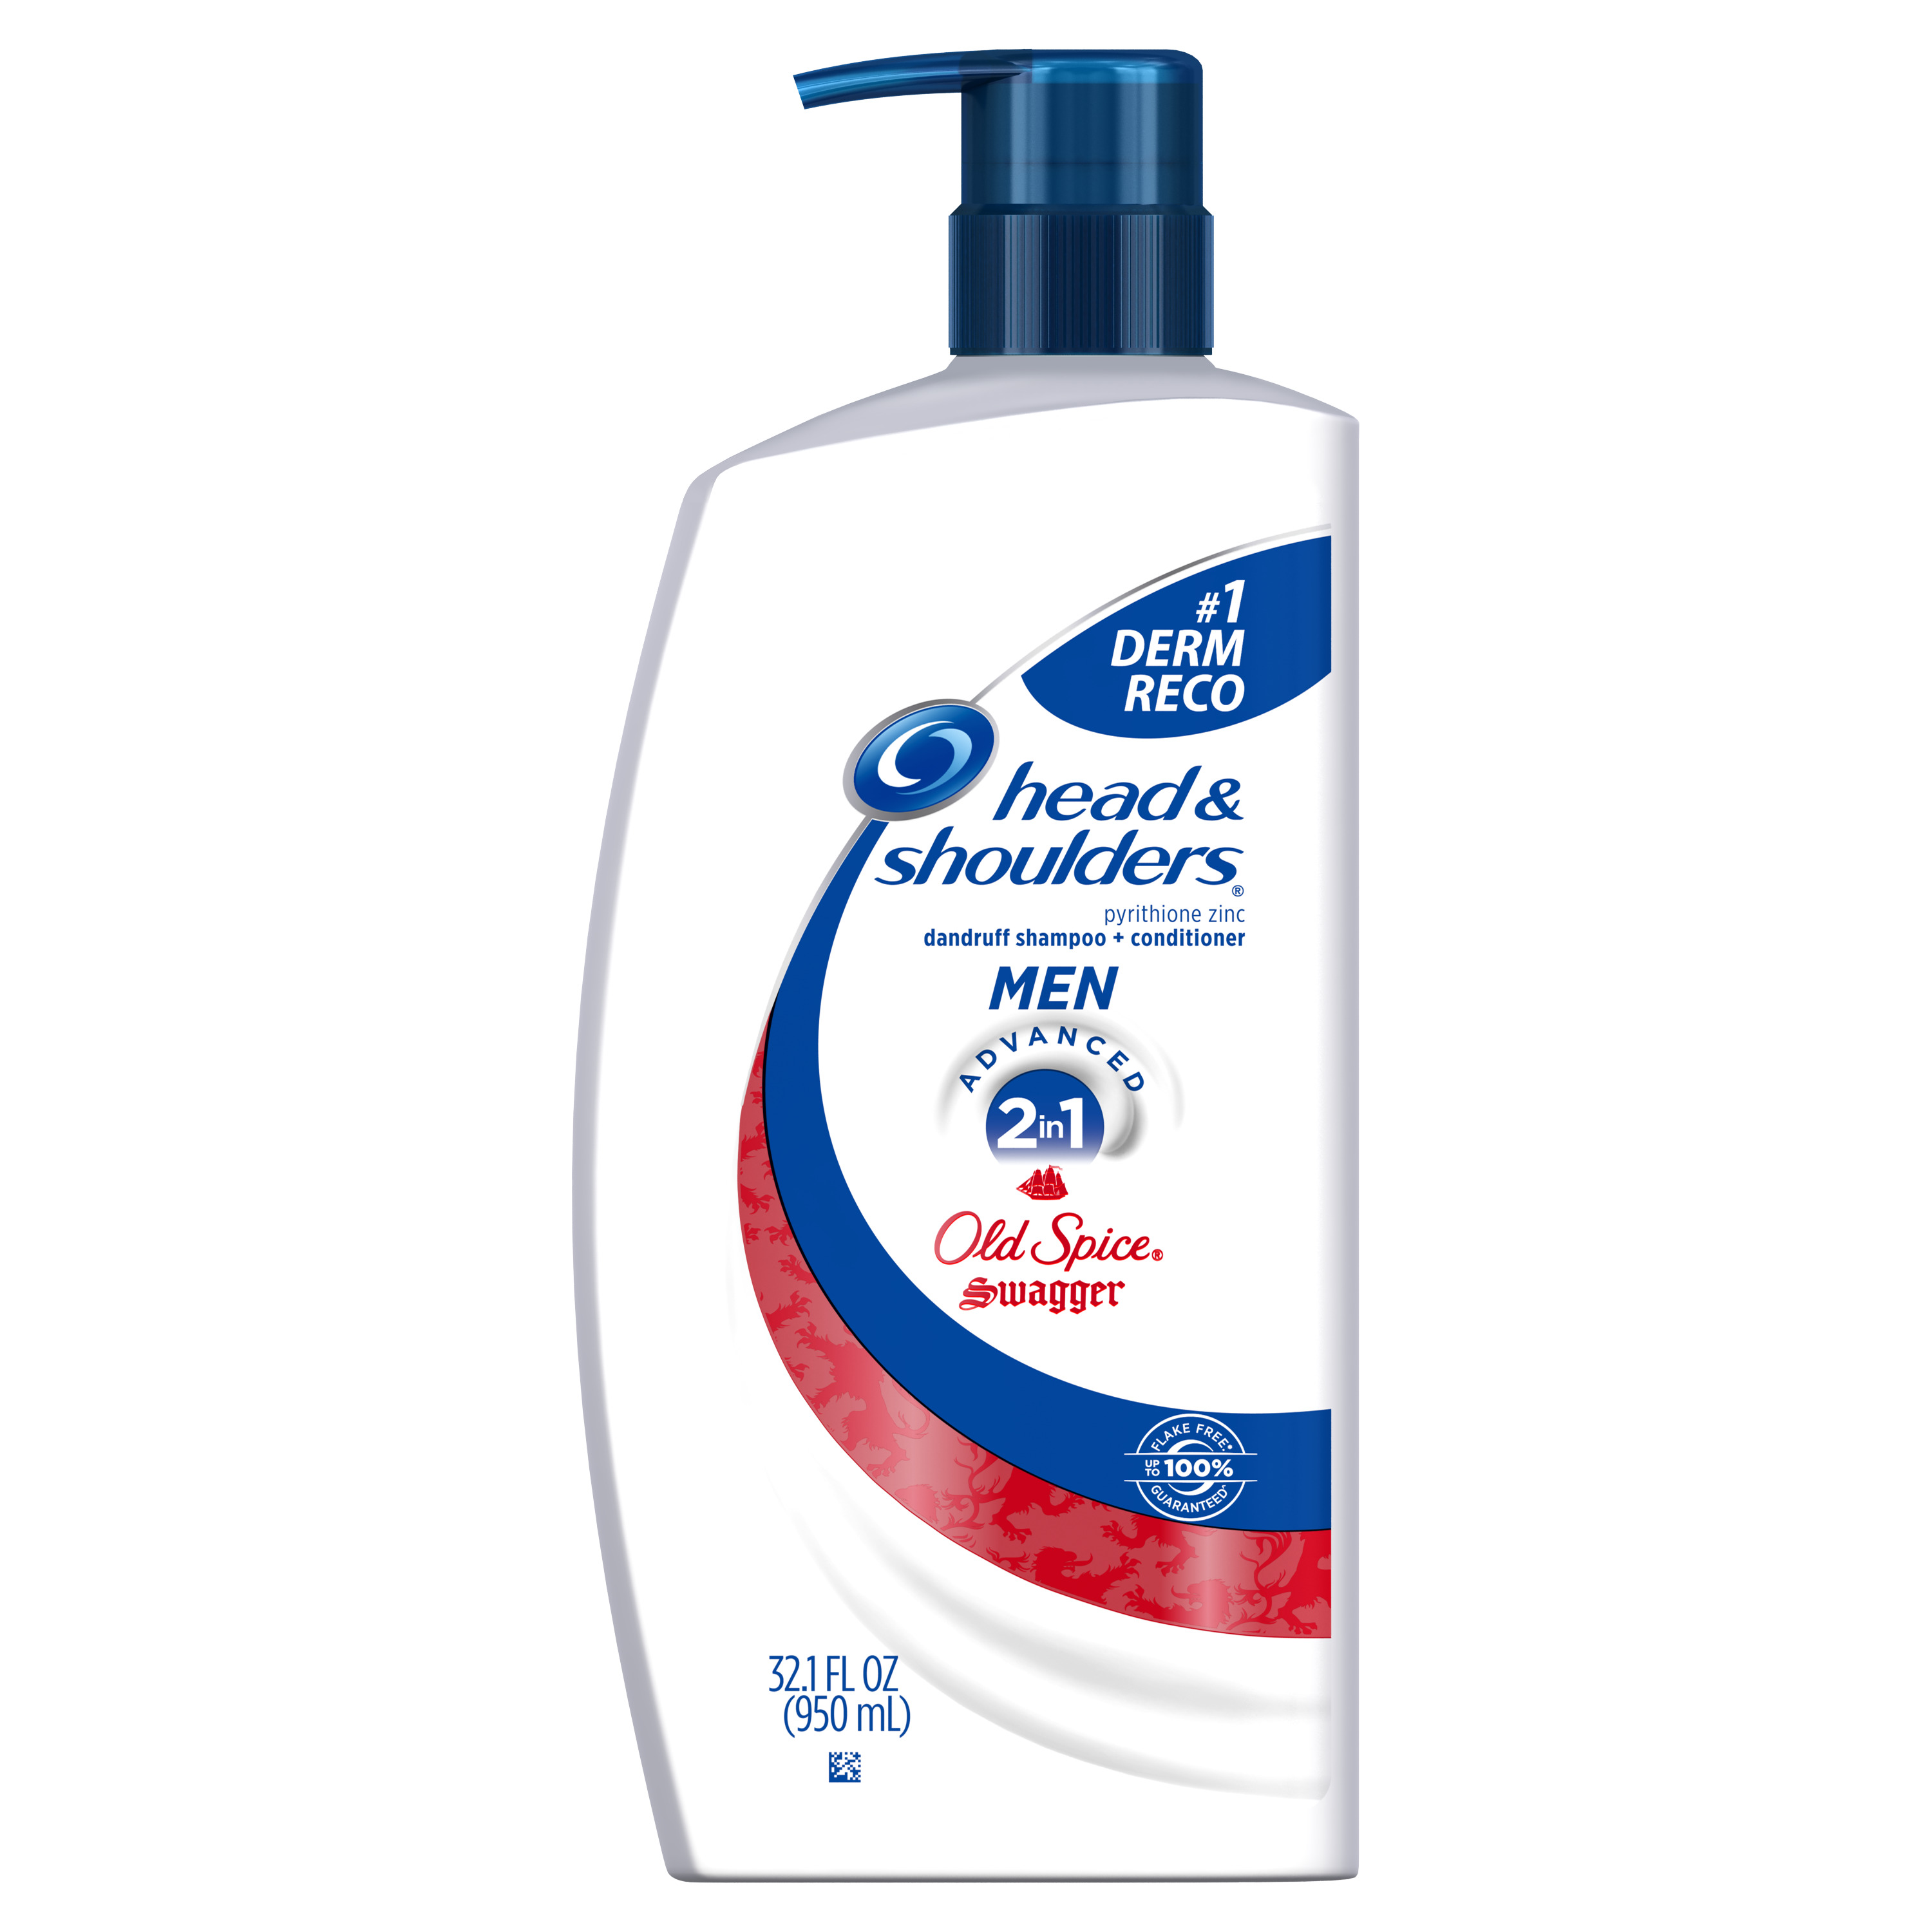 Head and Shoulders Old Spice Swagger 2-in-1 Anti-Dandruff Shampoo + Conditioner for Men 32.1 fl oz